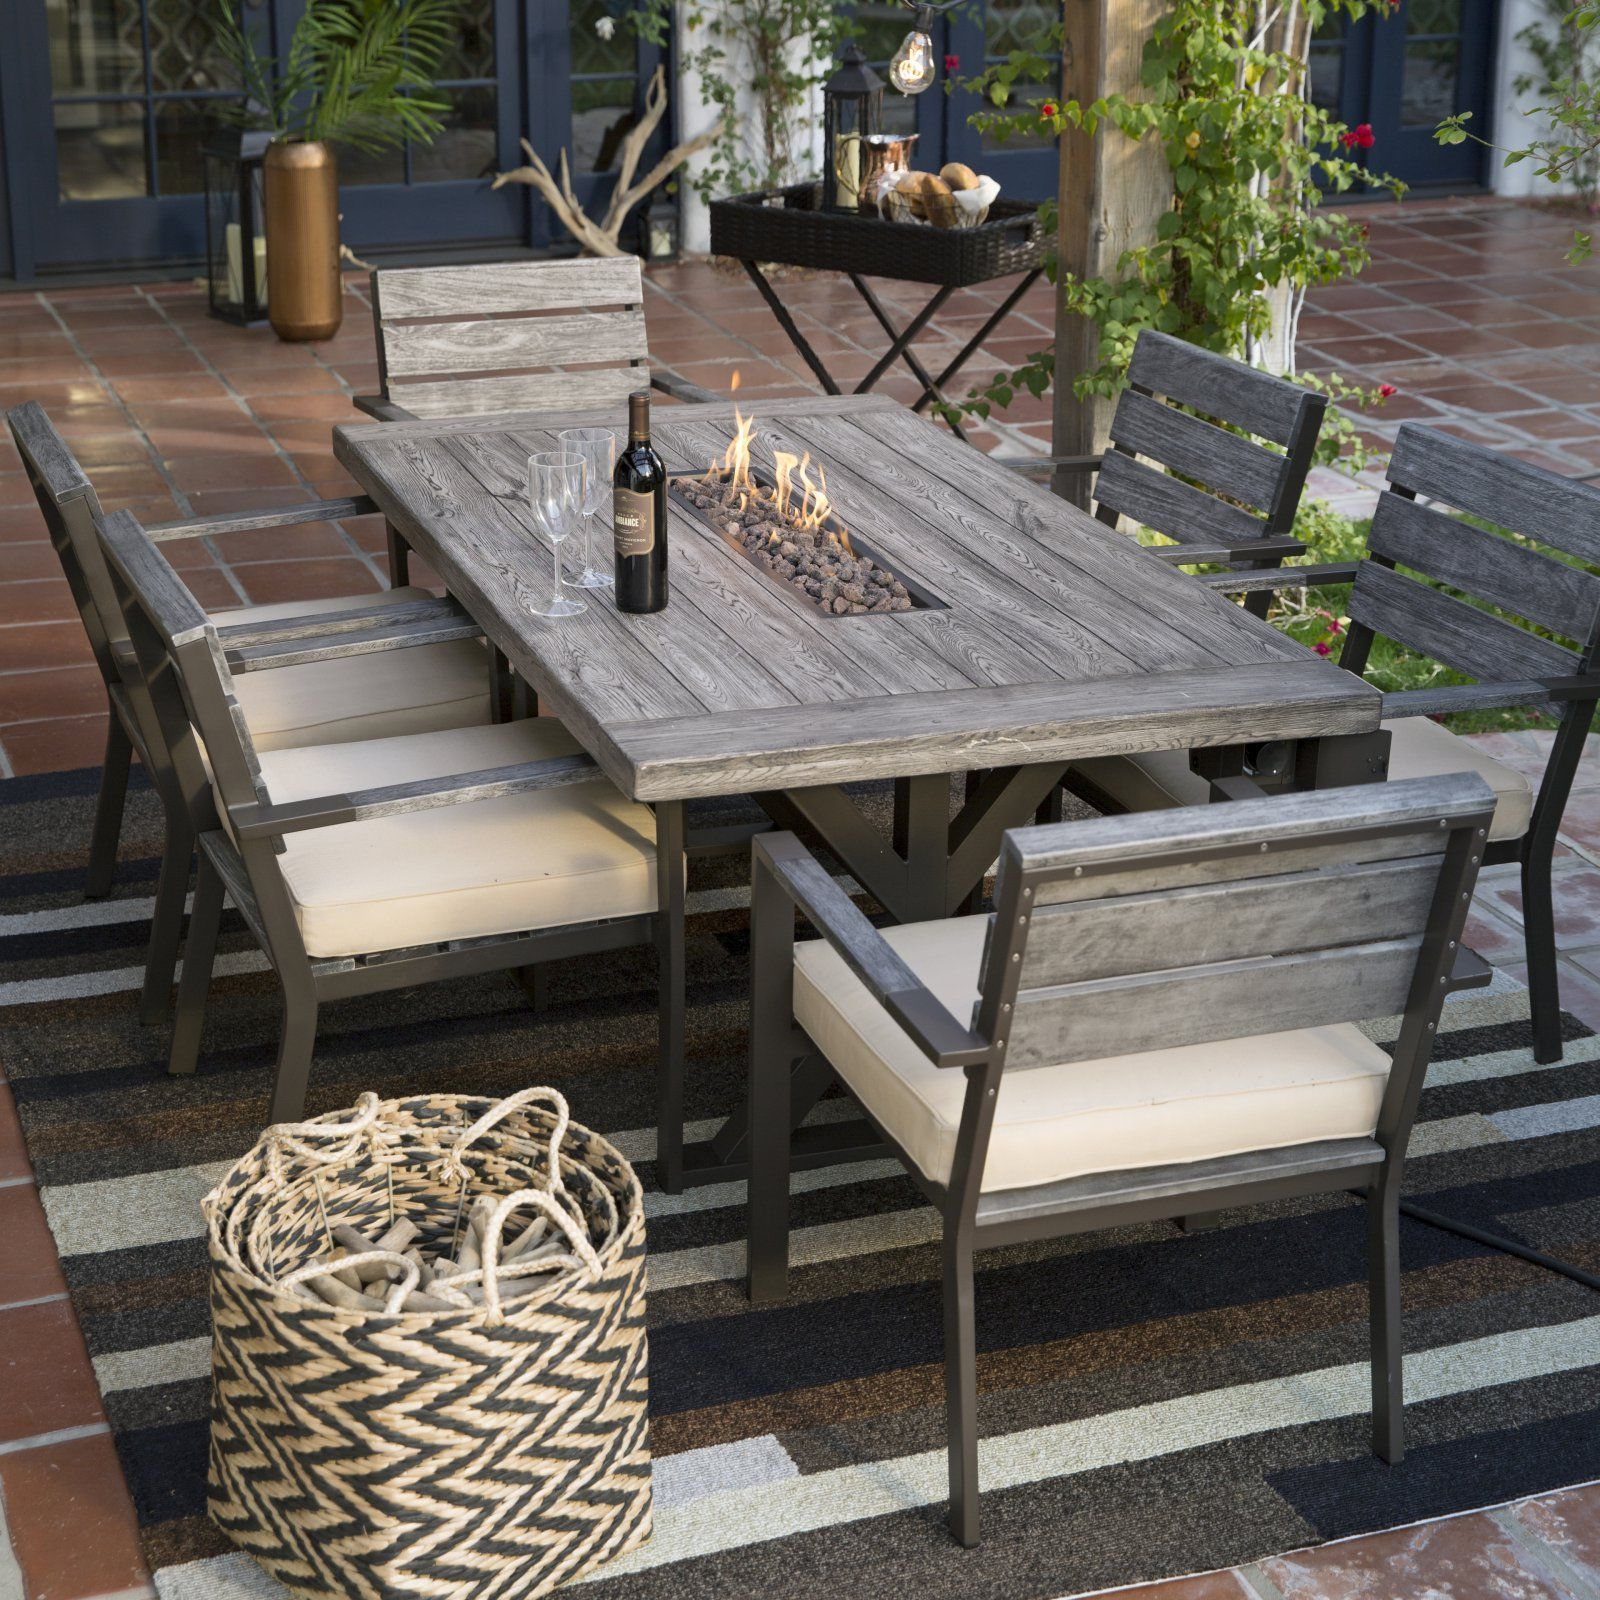 Patio Garden In 2020 Fire Pit Patio Set Patio Dining Table Outdoor Patio Table Modern outdoor fire dining table